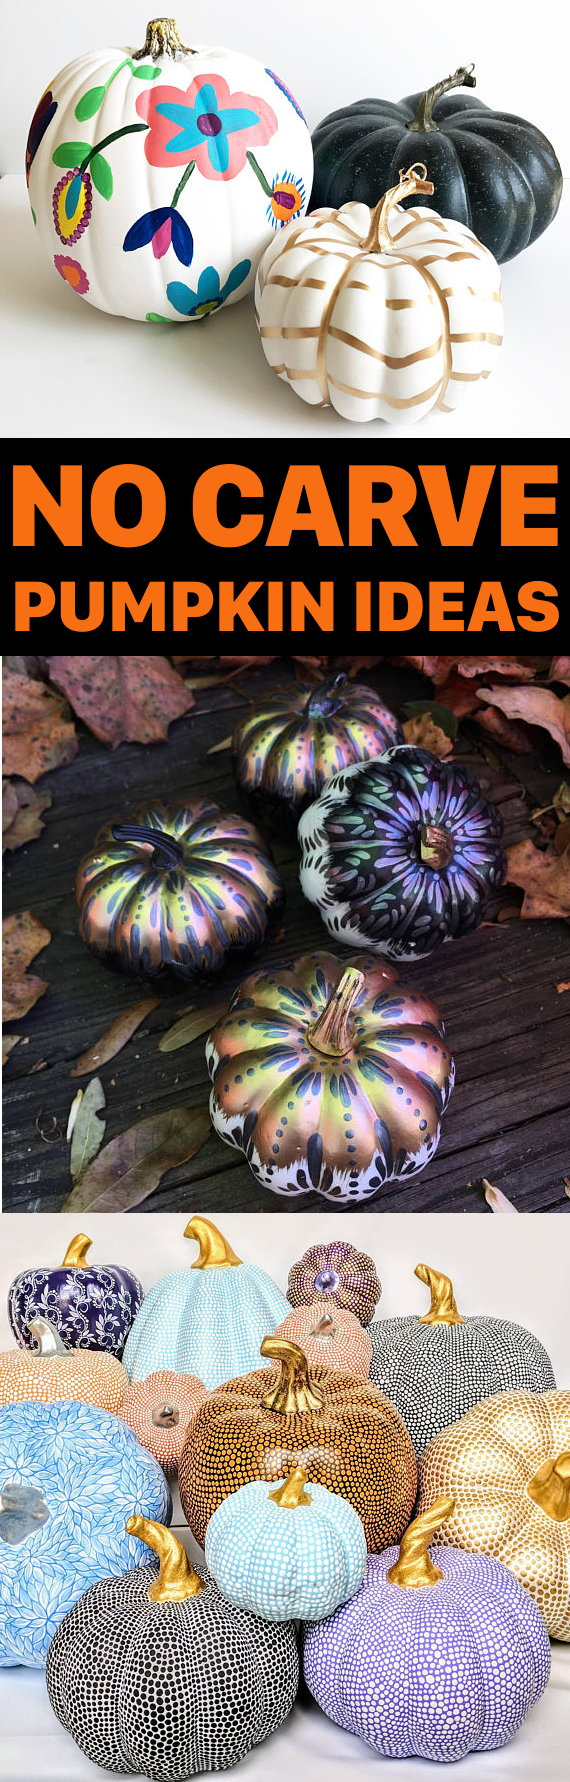 No Carve Pumpkin Ideas for Fall or Halloween! Are you looking for no carve pumpkin ideas for fall? These hand painted pumpkins are sure to make a stunning addition to your fall home decor! Whether you need inspiration for crafting your own no carve pumpkins or are looking to buy pre-made painted pumpkins, you'll simply love this painted fall pumpkin collection!